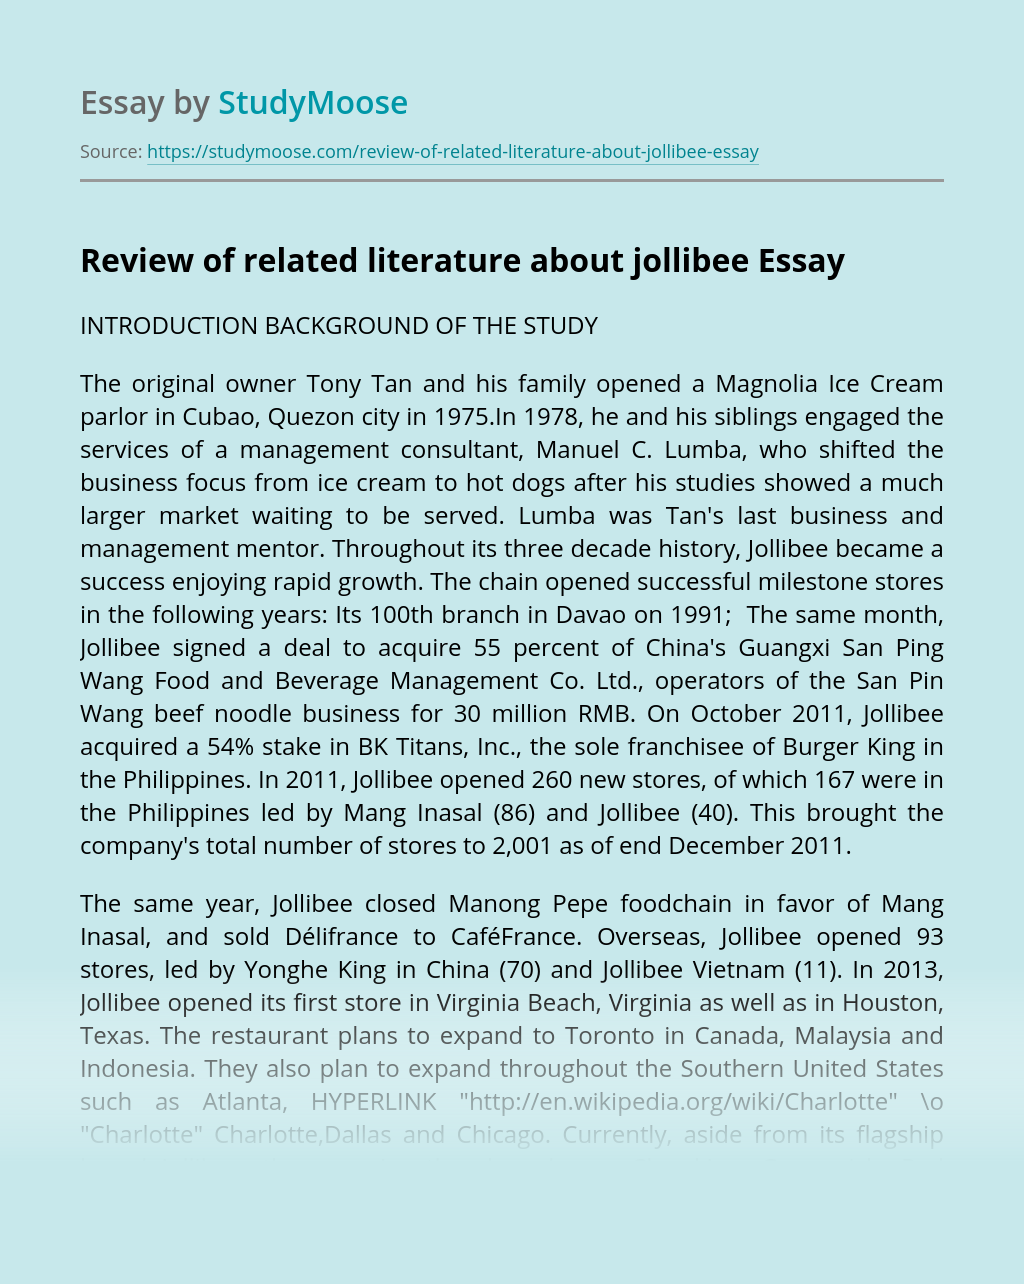 Review of related literature about jollibee